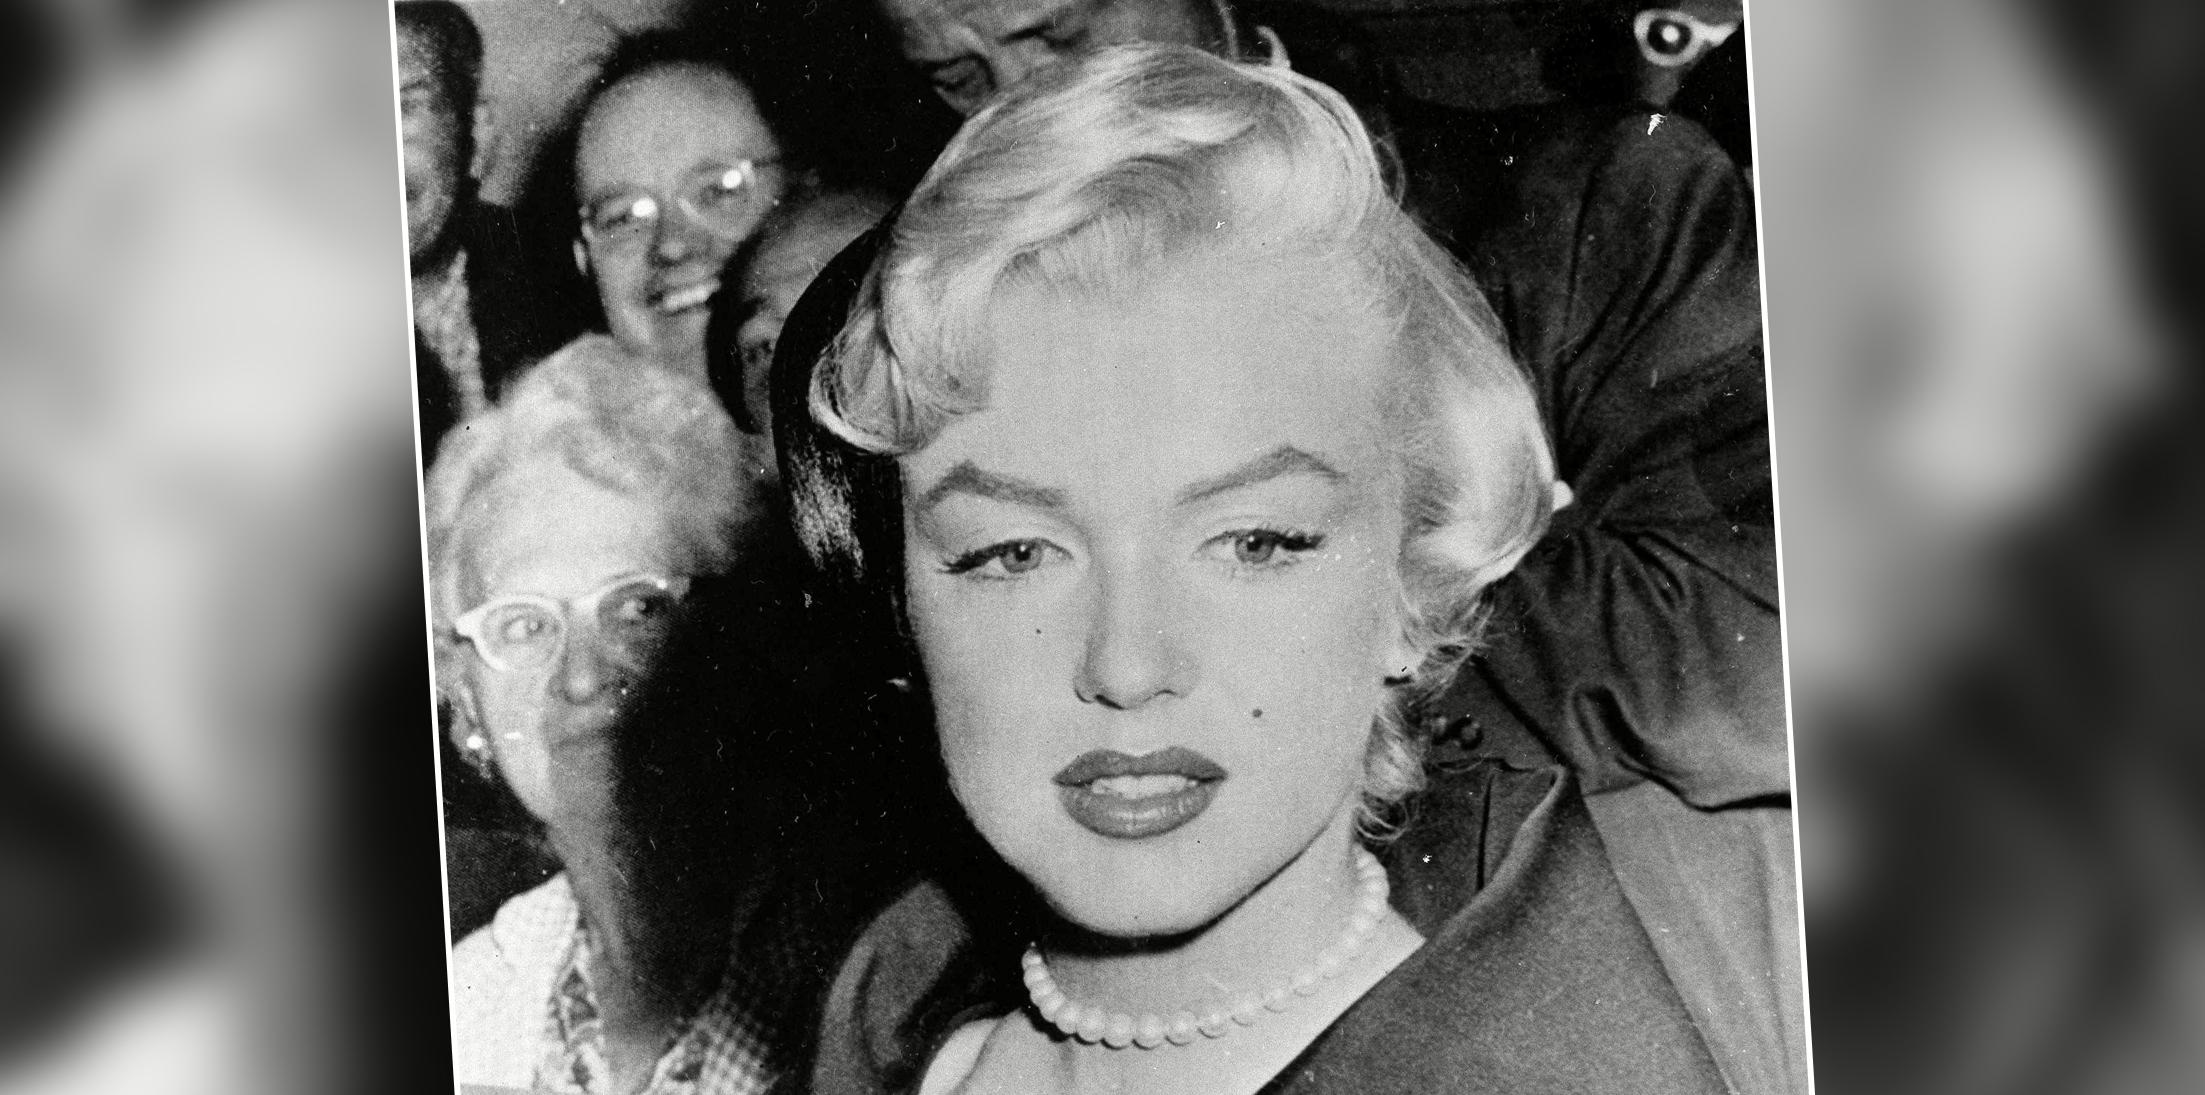 Marilyn Monroe's 'Death Wish' Exposed: Icon Was 'Unhappy & Damaged,'